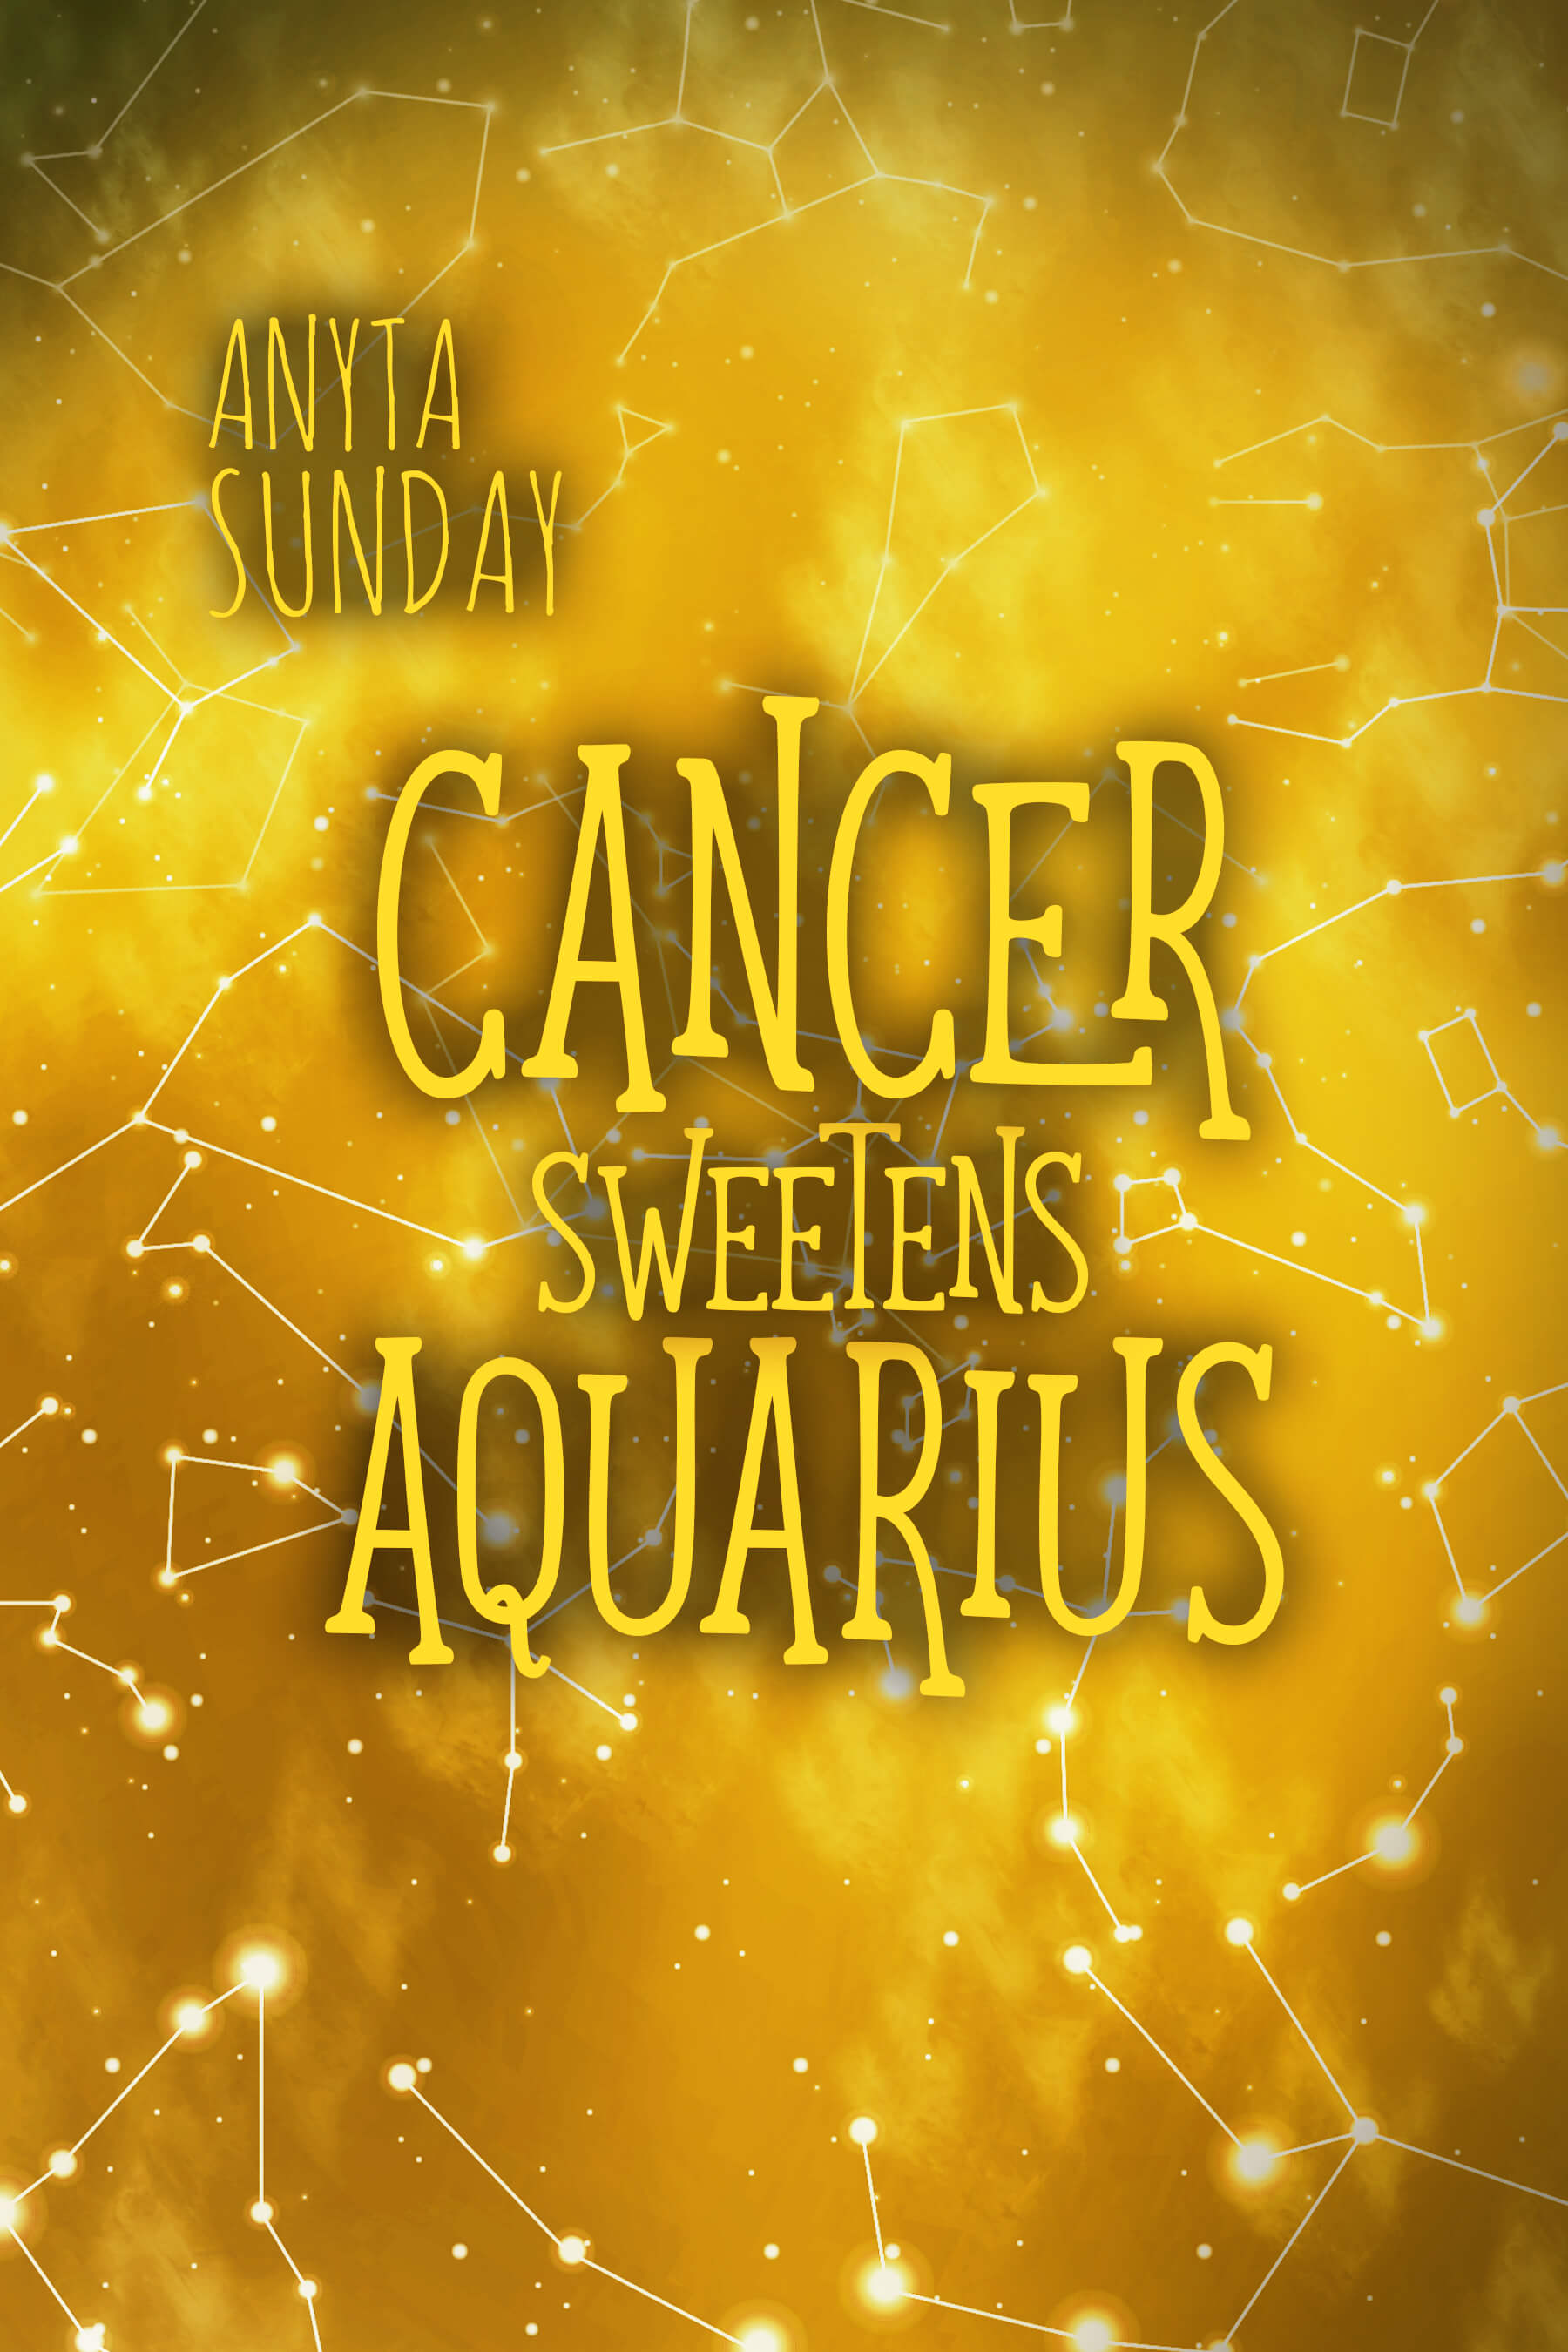 Shortstory Cancer Sweetens Aquarius by gay romance writer Anyta Sunday